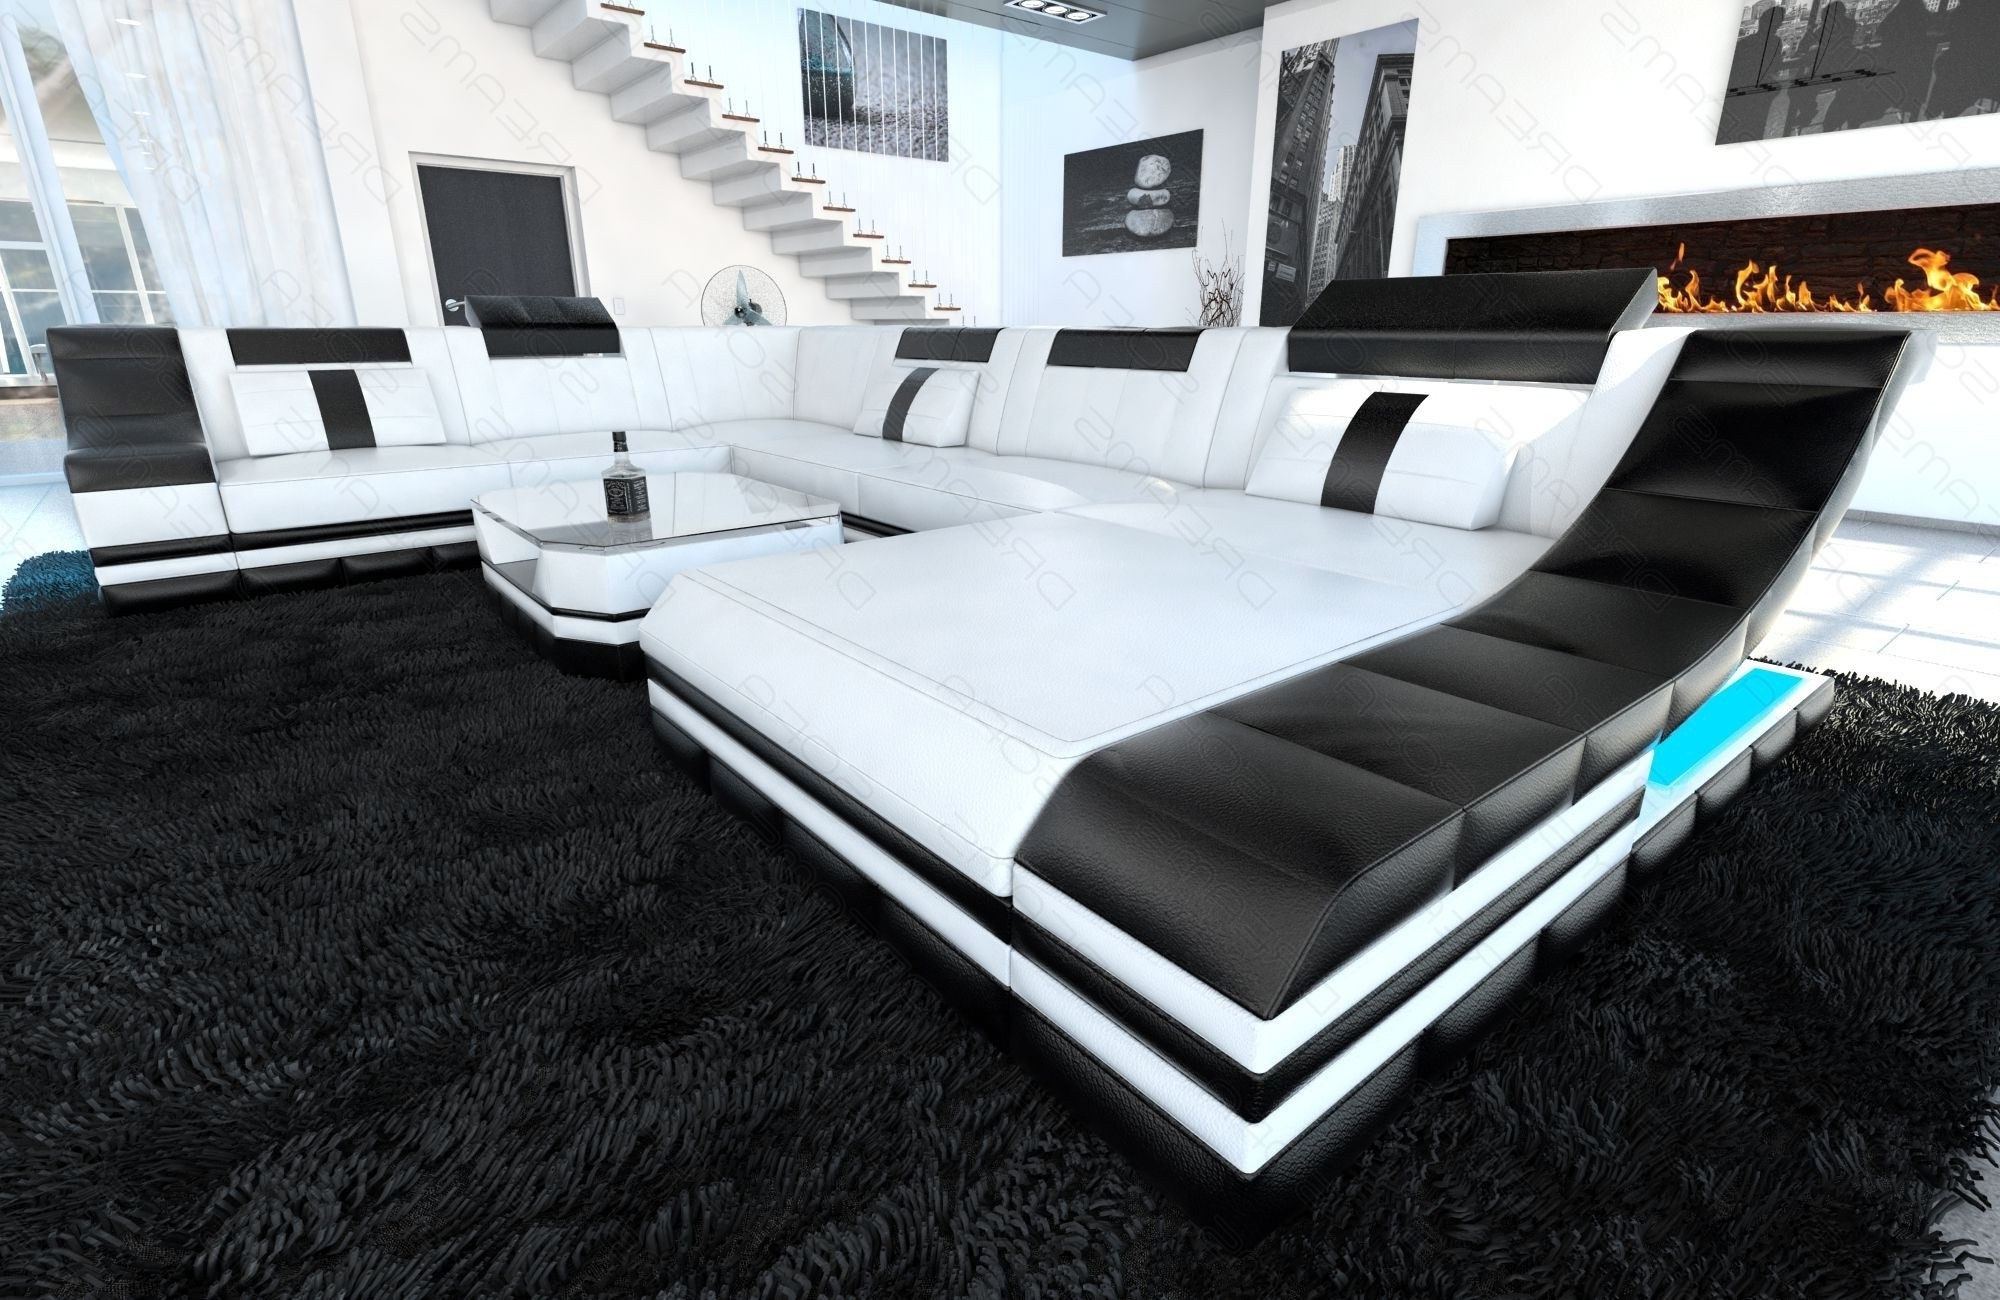 Sofadreams Regarding Well Known Luxury Sectional Sofas (View 16 of 20)